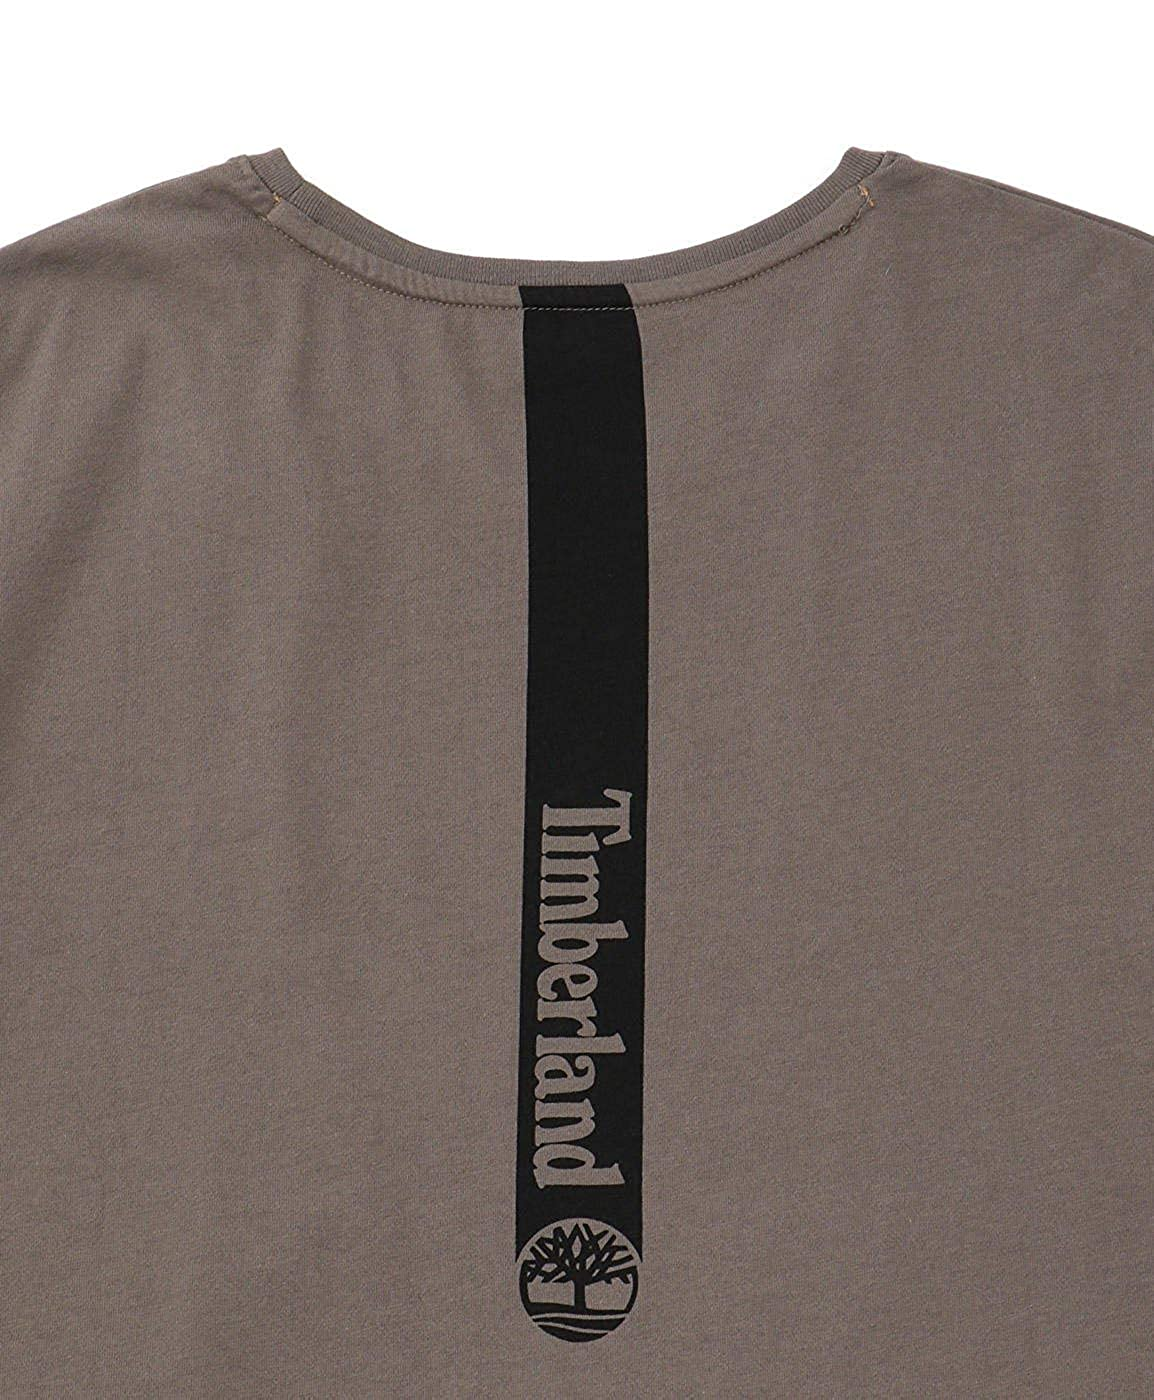 Timberland Mens Short Sleeve Back Graphic Tee Bungee Cord LG